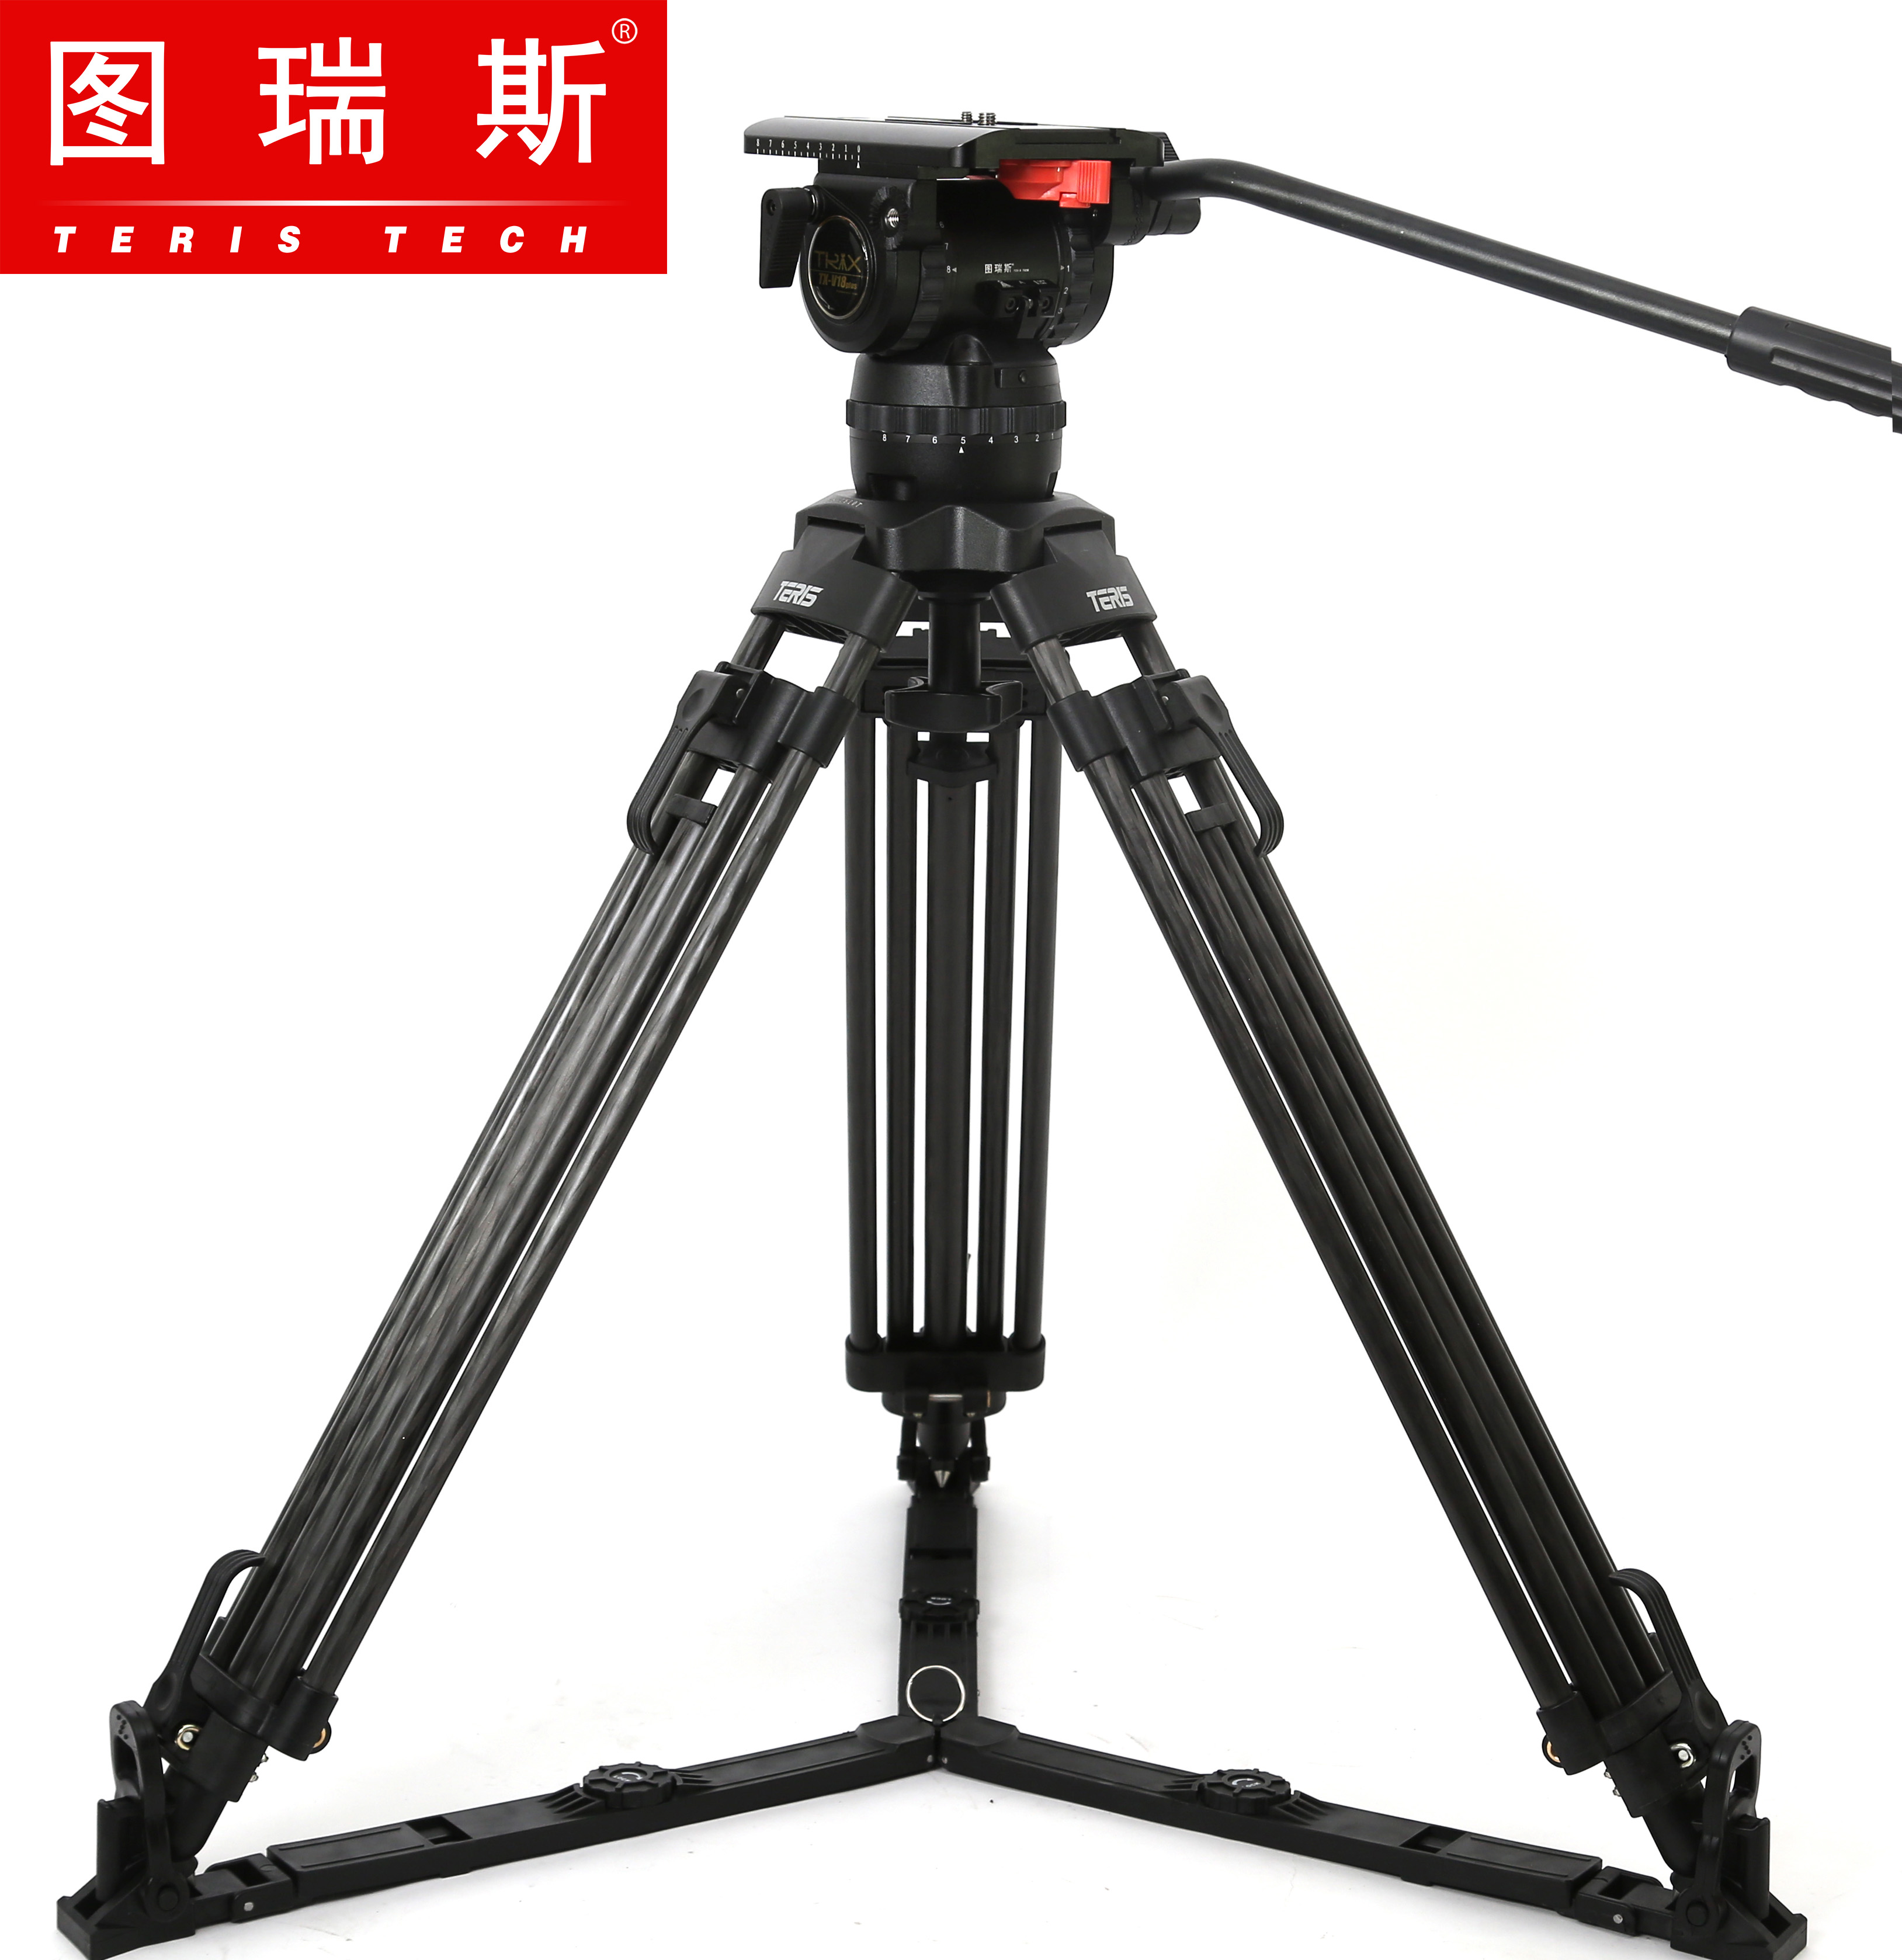 TERIS V18T Carbon Fiber Tripod Video Camera Professional Tripods with Fluid Head Load 18kg For RED